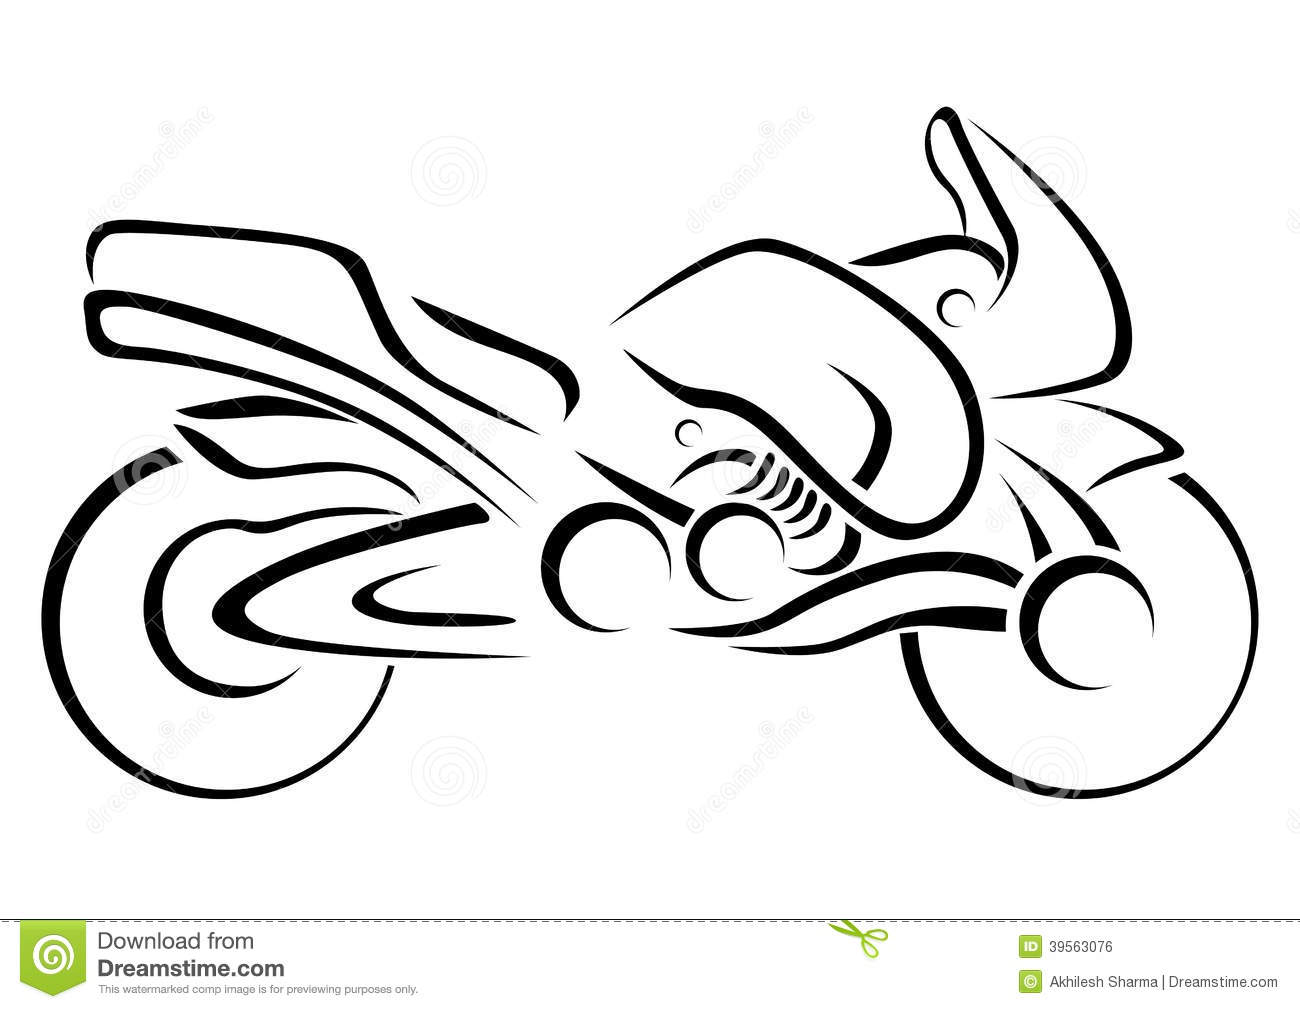 Jpg To Line Drawing : Stylized motorcycle vector illustration stock